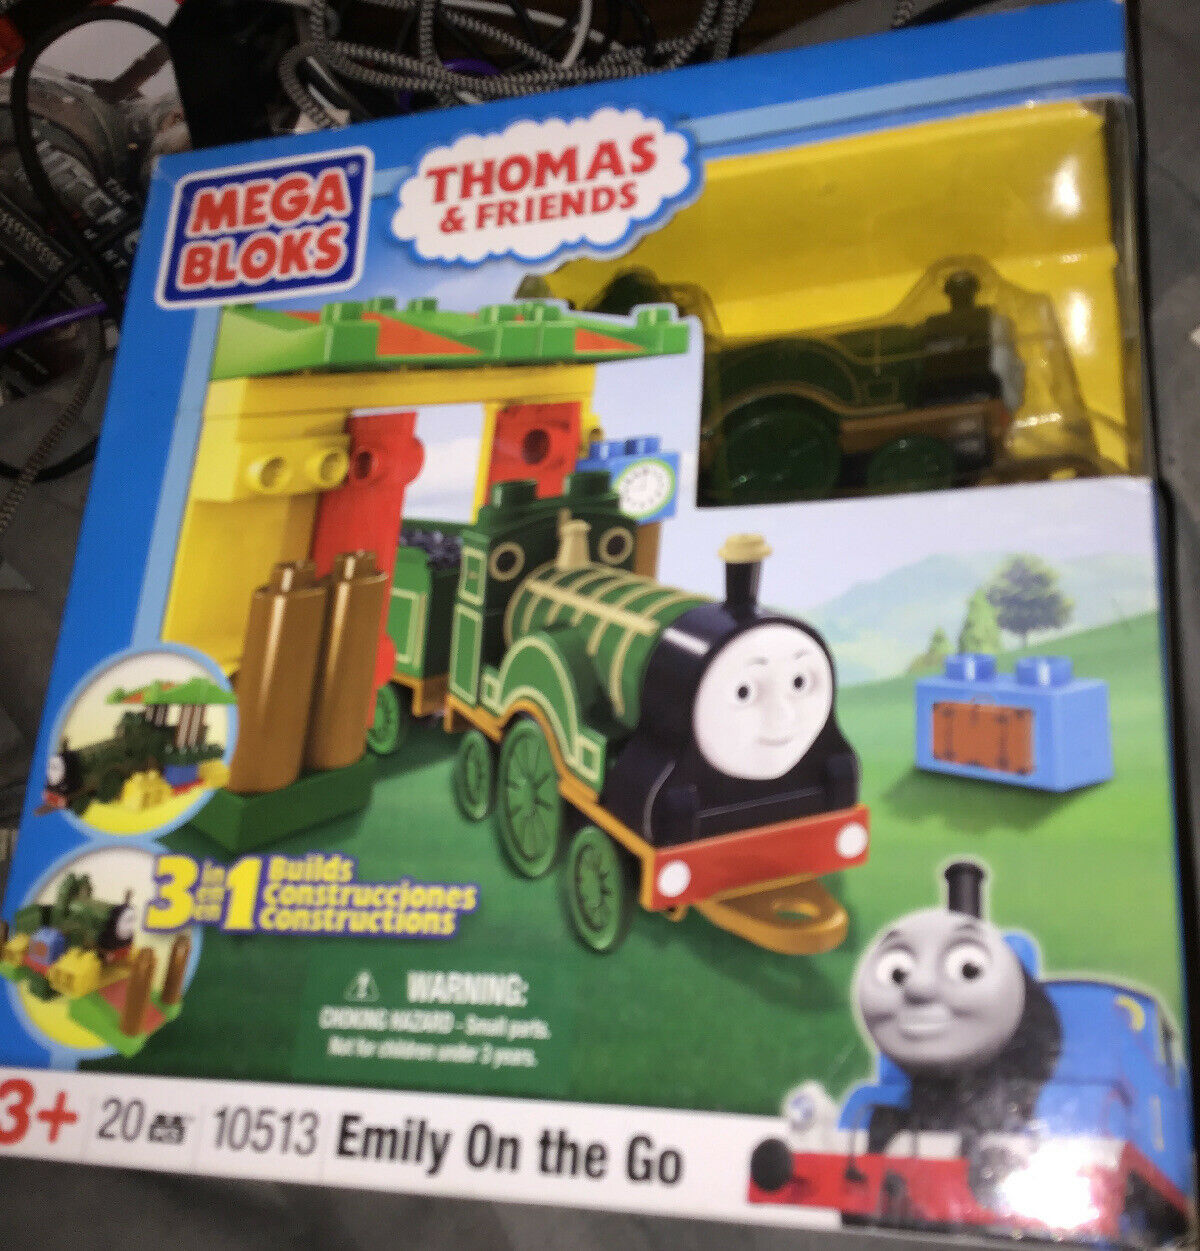 Mega Bloks Thomas The Train Friends 3 In 1 Buildable Emily On